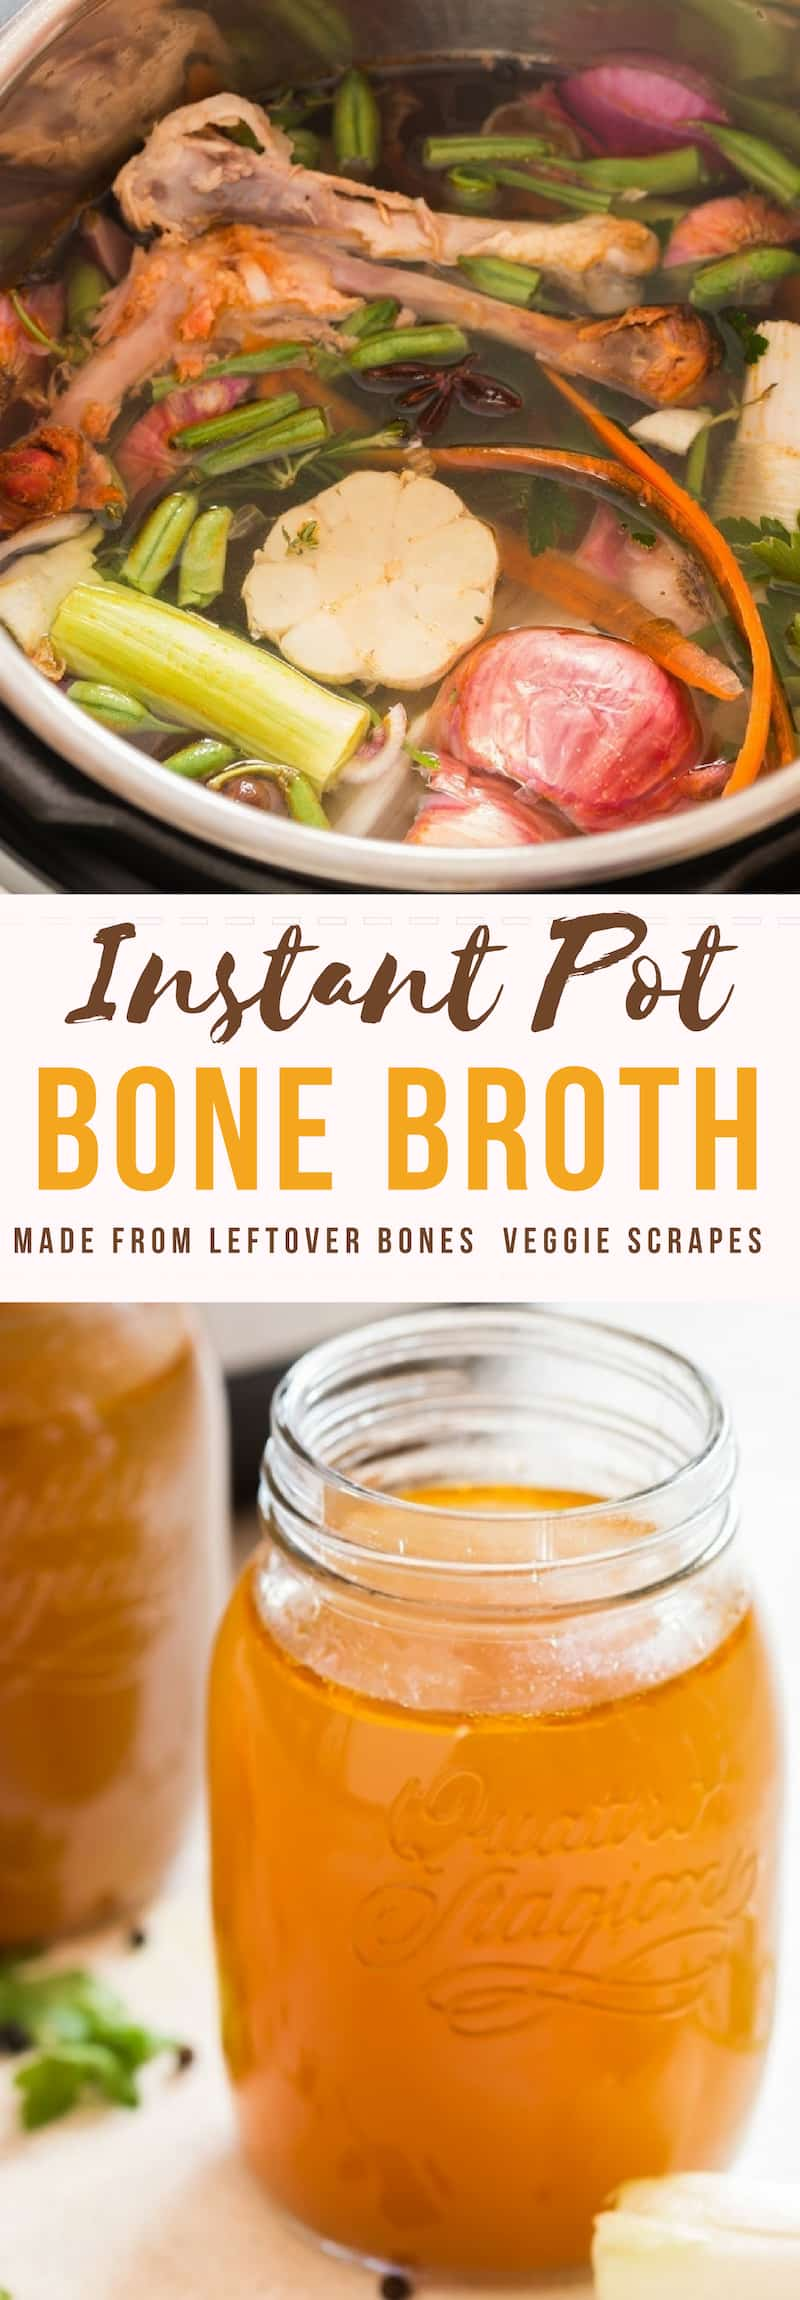 instant pot bone broth in glass jars with text overlay